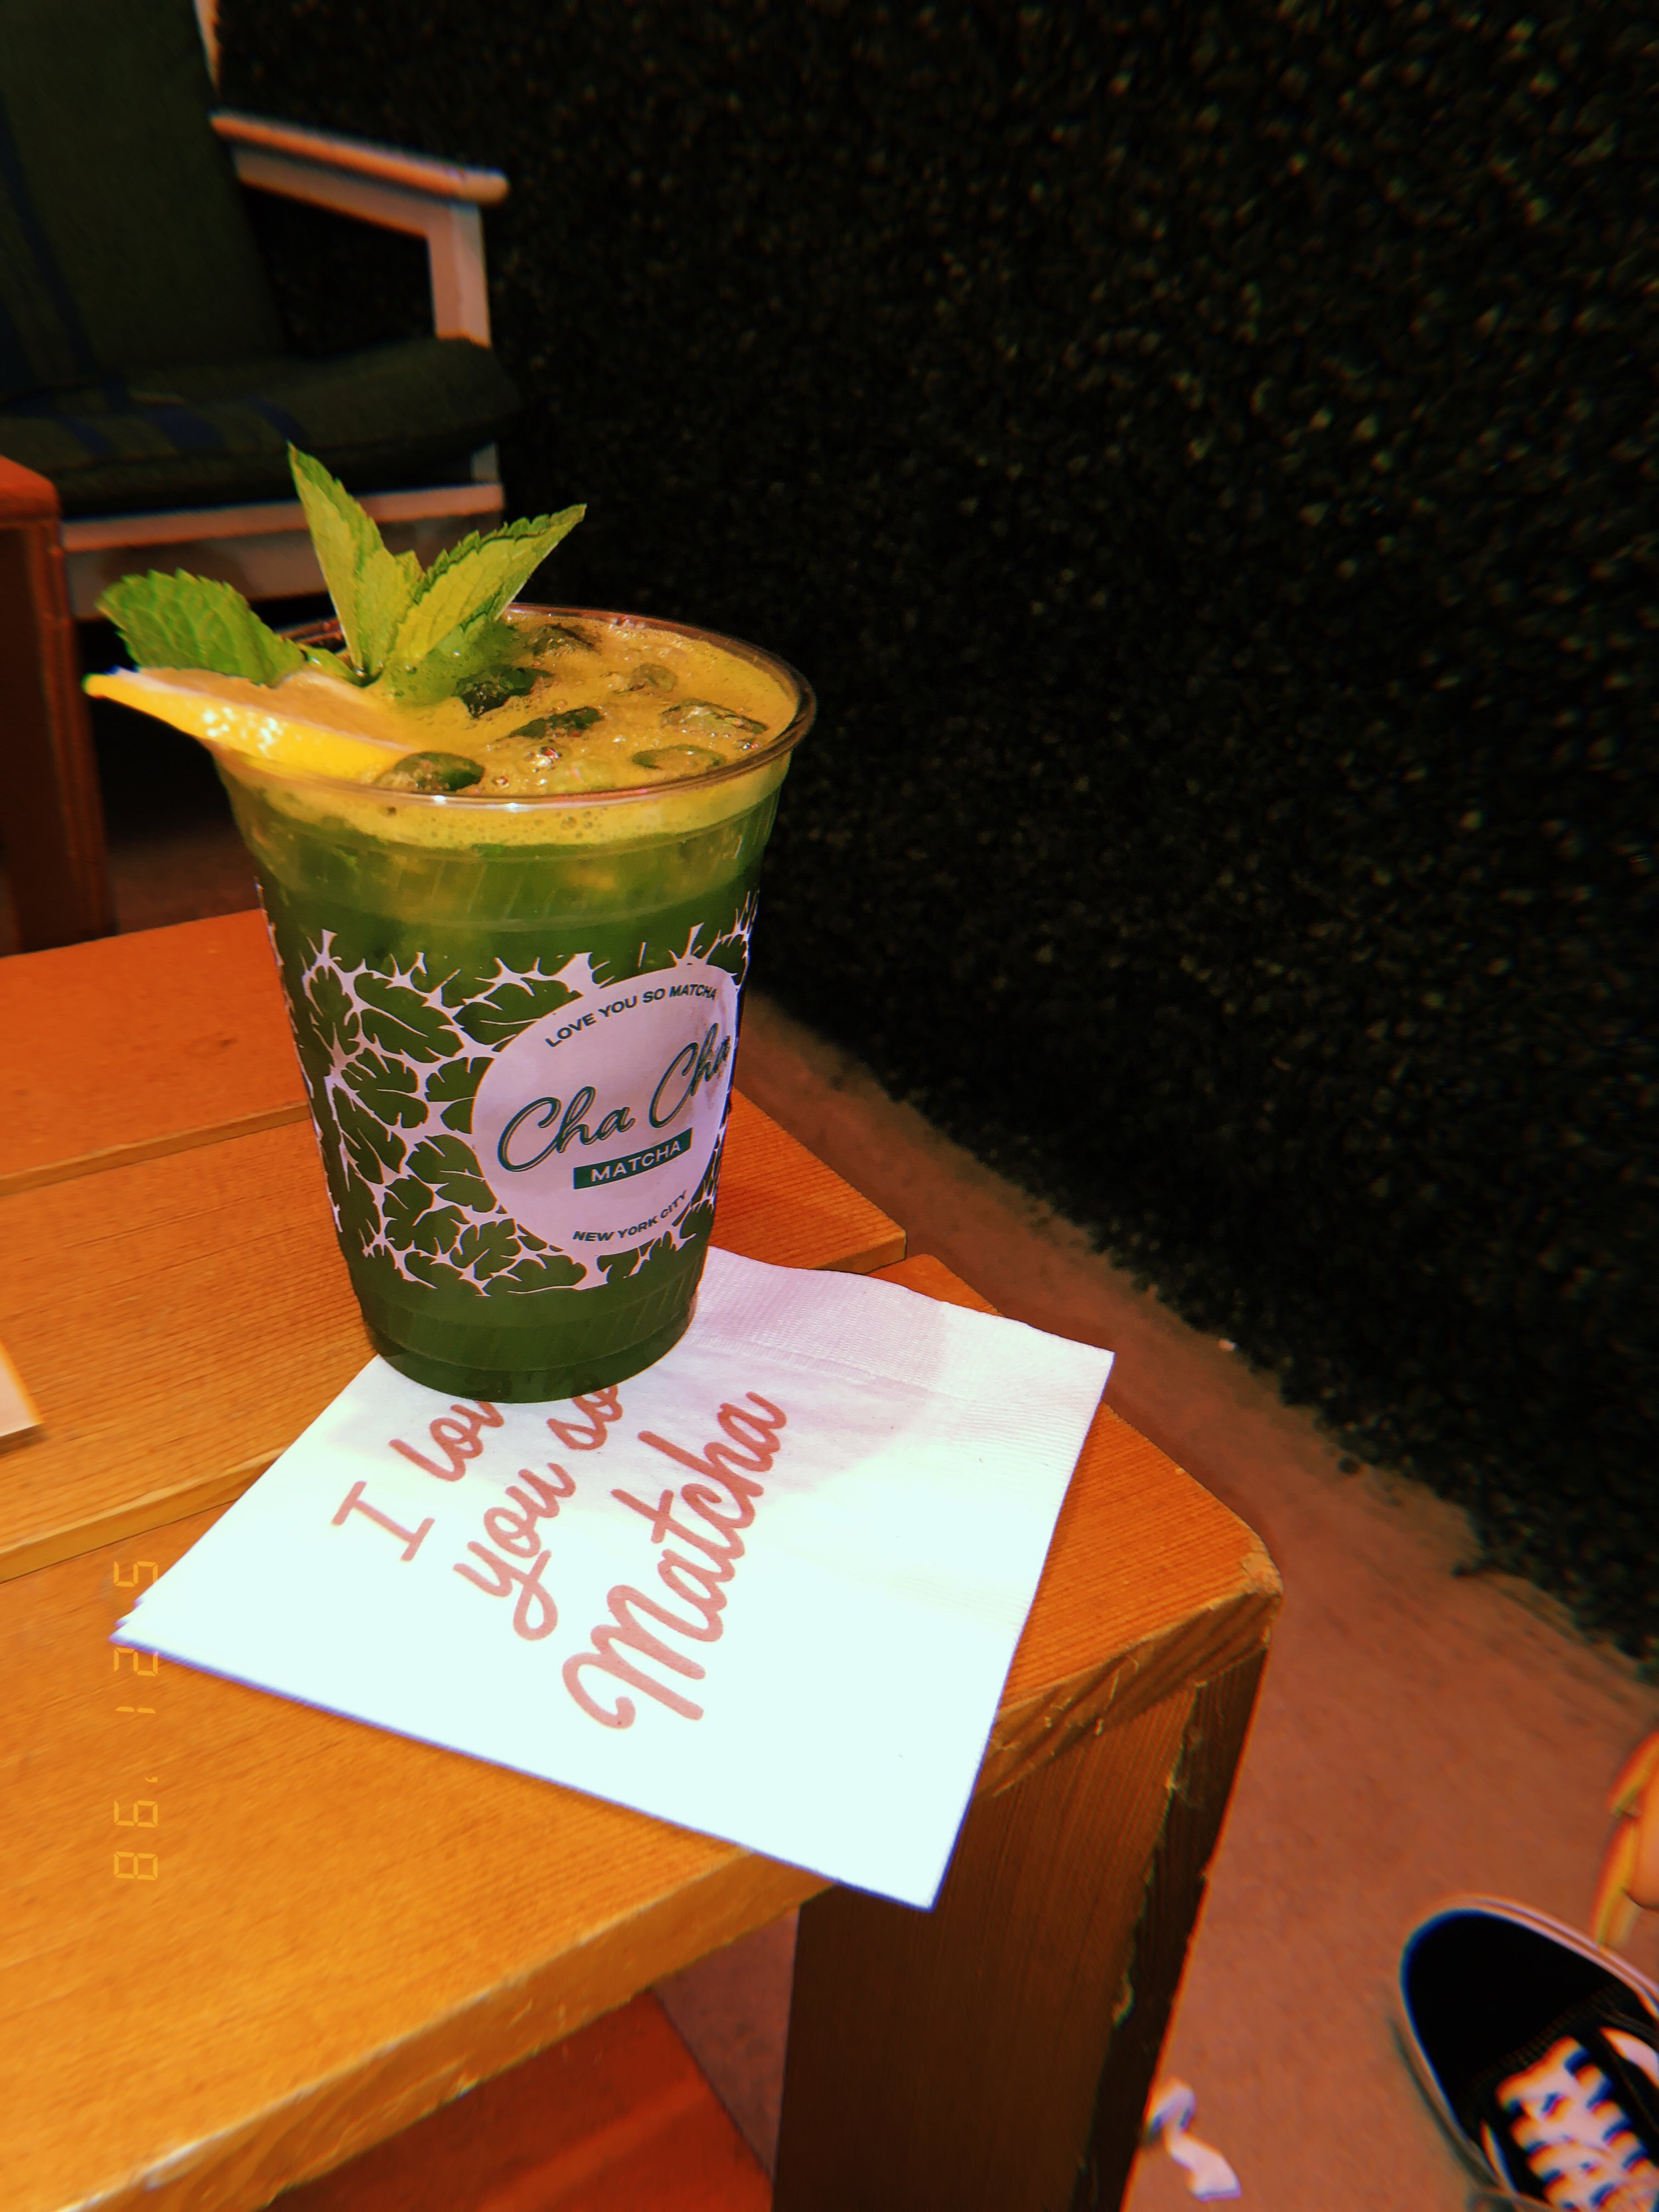 CHA CHA Matcha - I have a crazy obsession with matcha so when I found out about this place I had to try it. I ordered the Matcha Lemonade and it was deliciously refreshing. The atmosphere was so unique set up like a tiki bar with lounge chairs and trap music playing. Here is the matcha bar info below.373 Broome St. New York, https://chachamatcha.com/